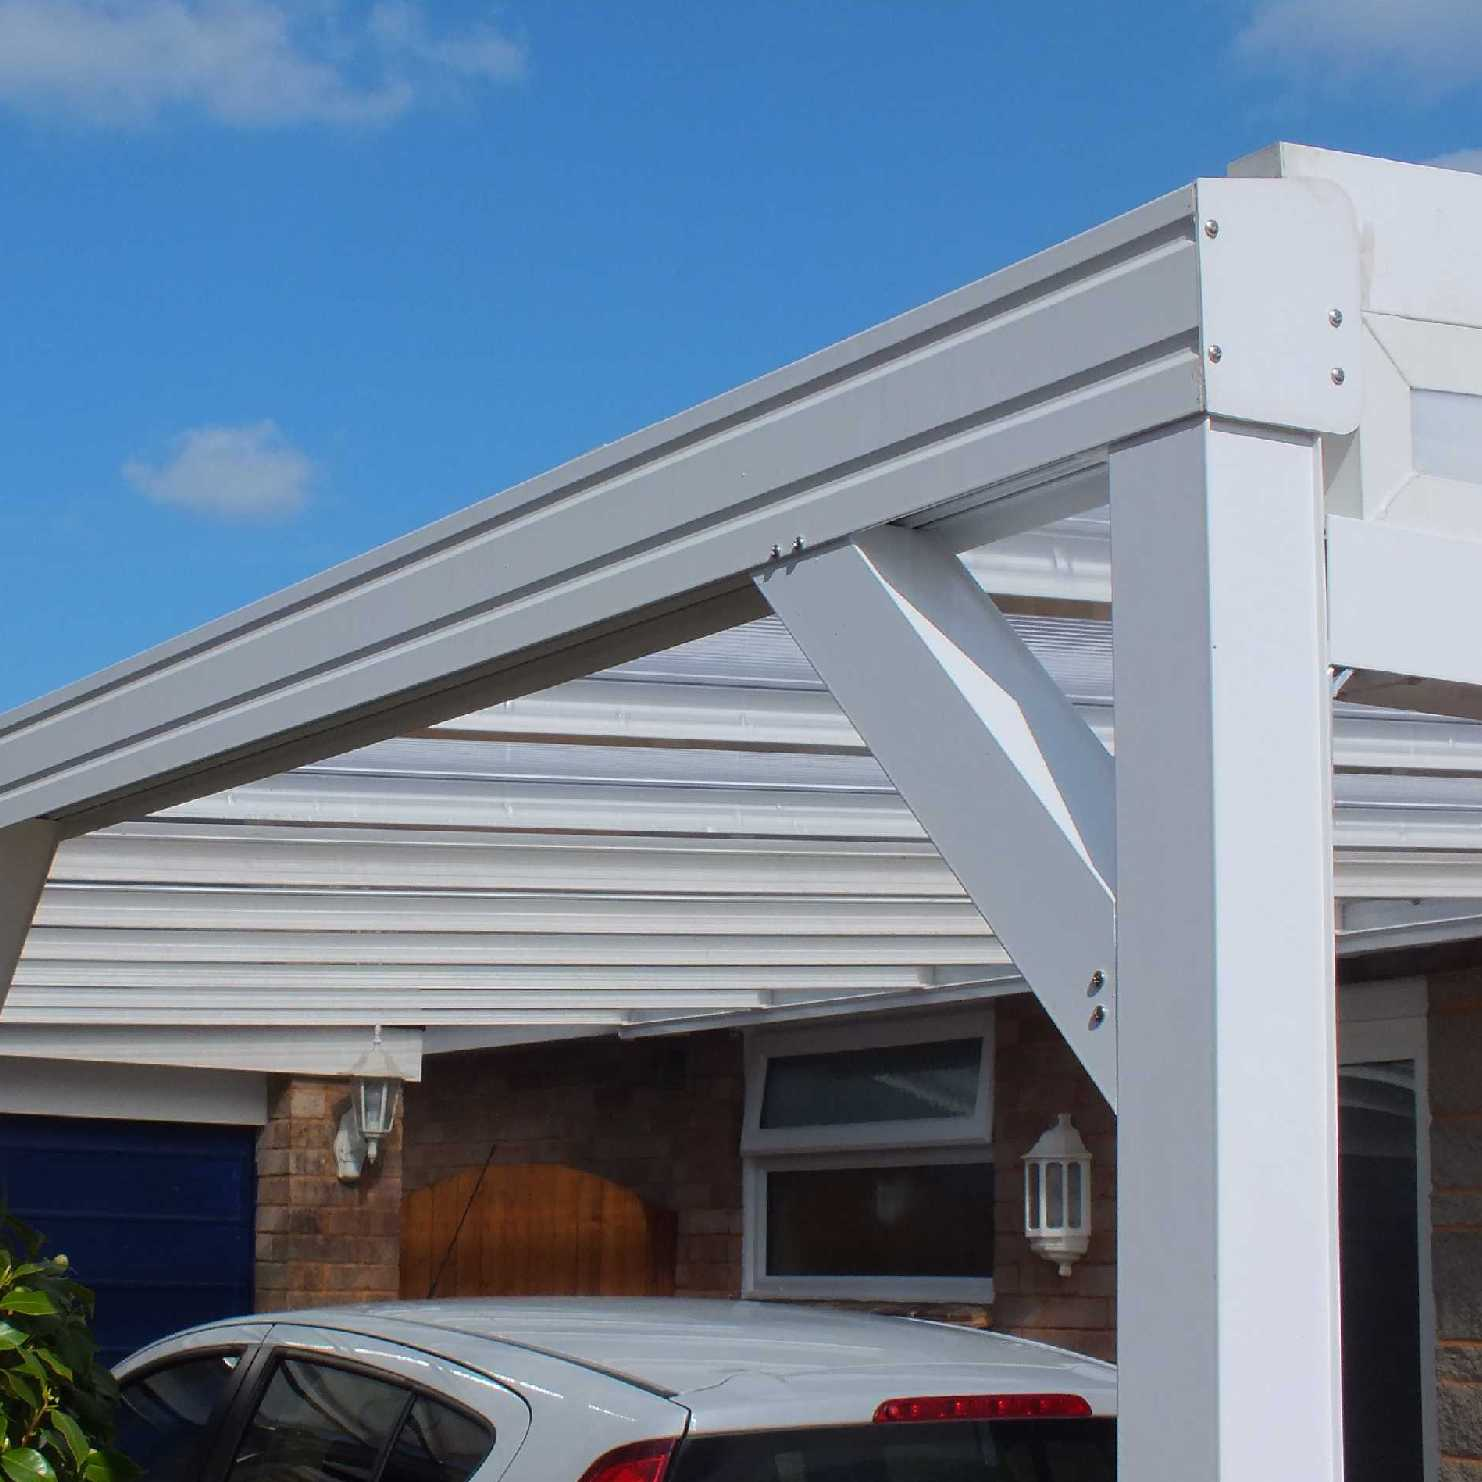 Great deals on Omega Smart Lean-To Canopy with 16mm Polycarbonate Glazing - 4.2m (W) x 2.0m (P), (3) Supporting Posts